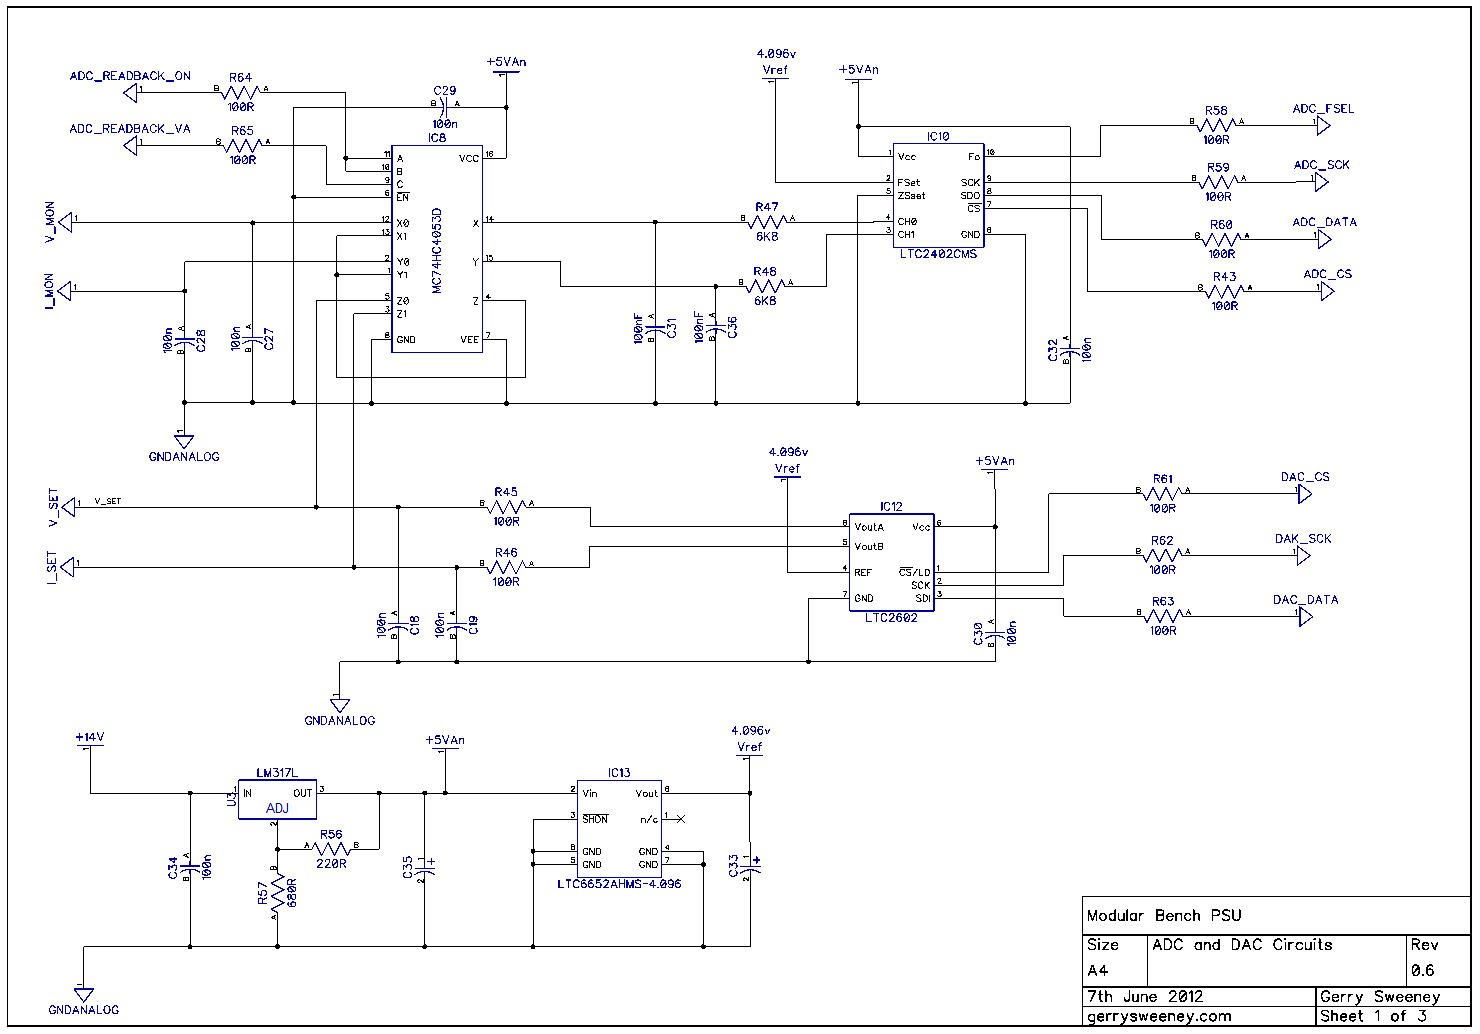 Fully Programmable Modular Bench Power Supply Part 9 Psu Diagram Furthermore Shunt Voltage Regulator Circuit I Am Happy That The Control Circuitry And Firmware Is Now Good Enough For A Version 1 Baseline This What We Have Increased Each Range